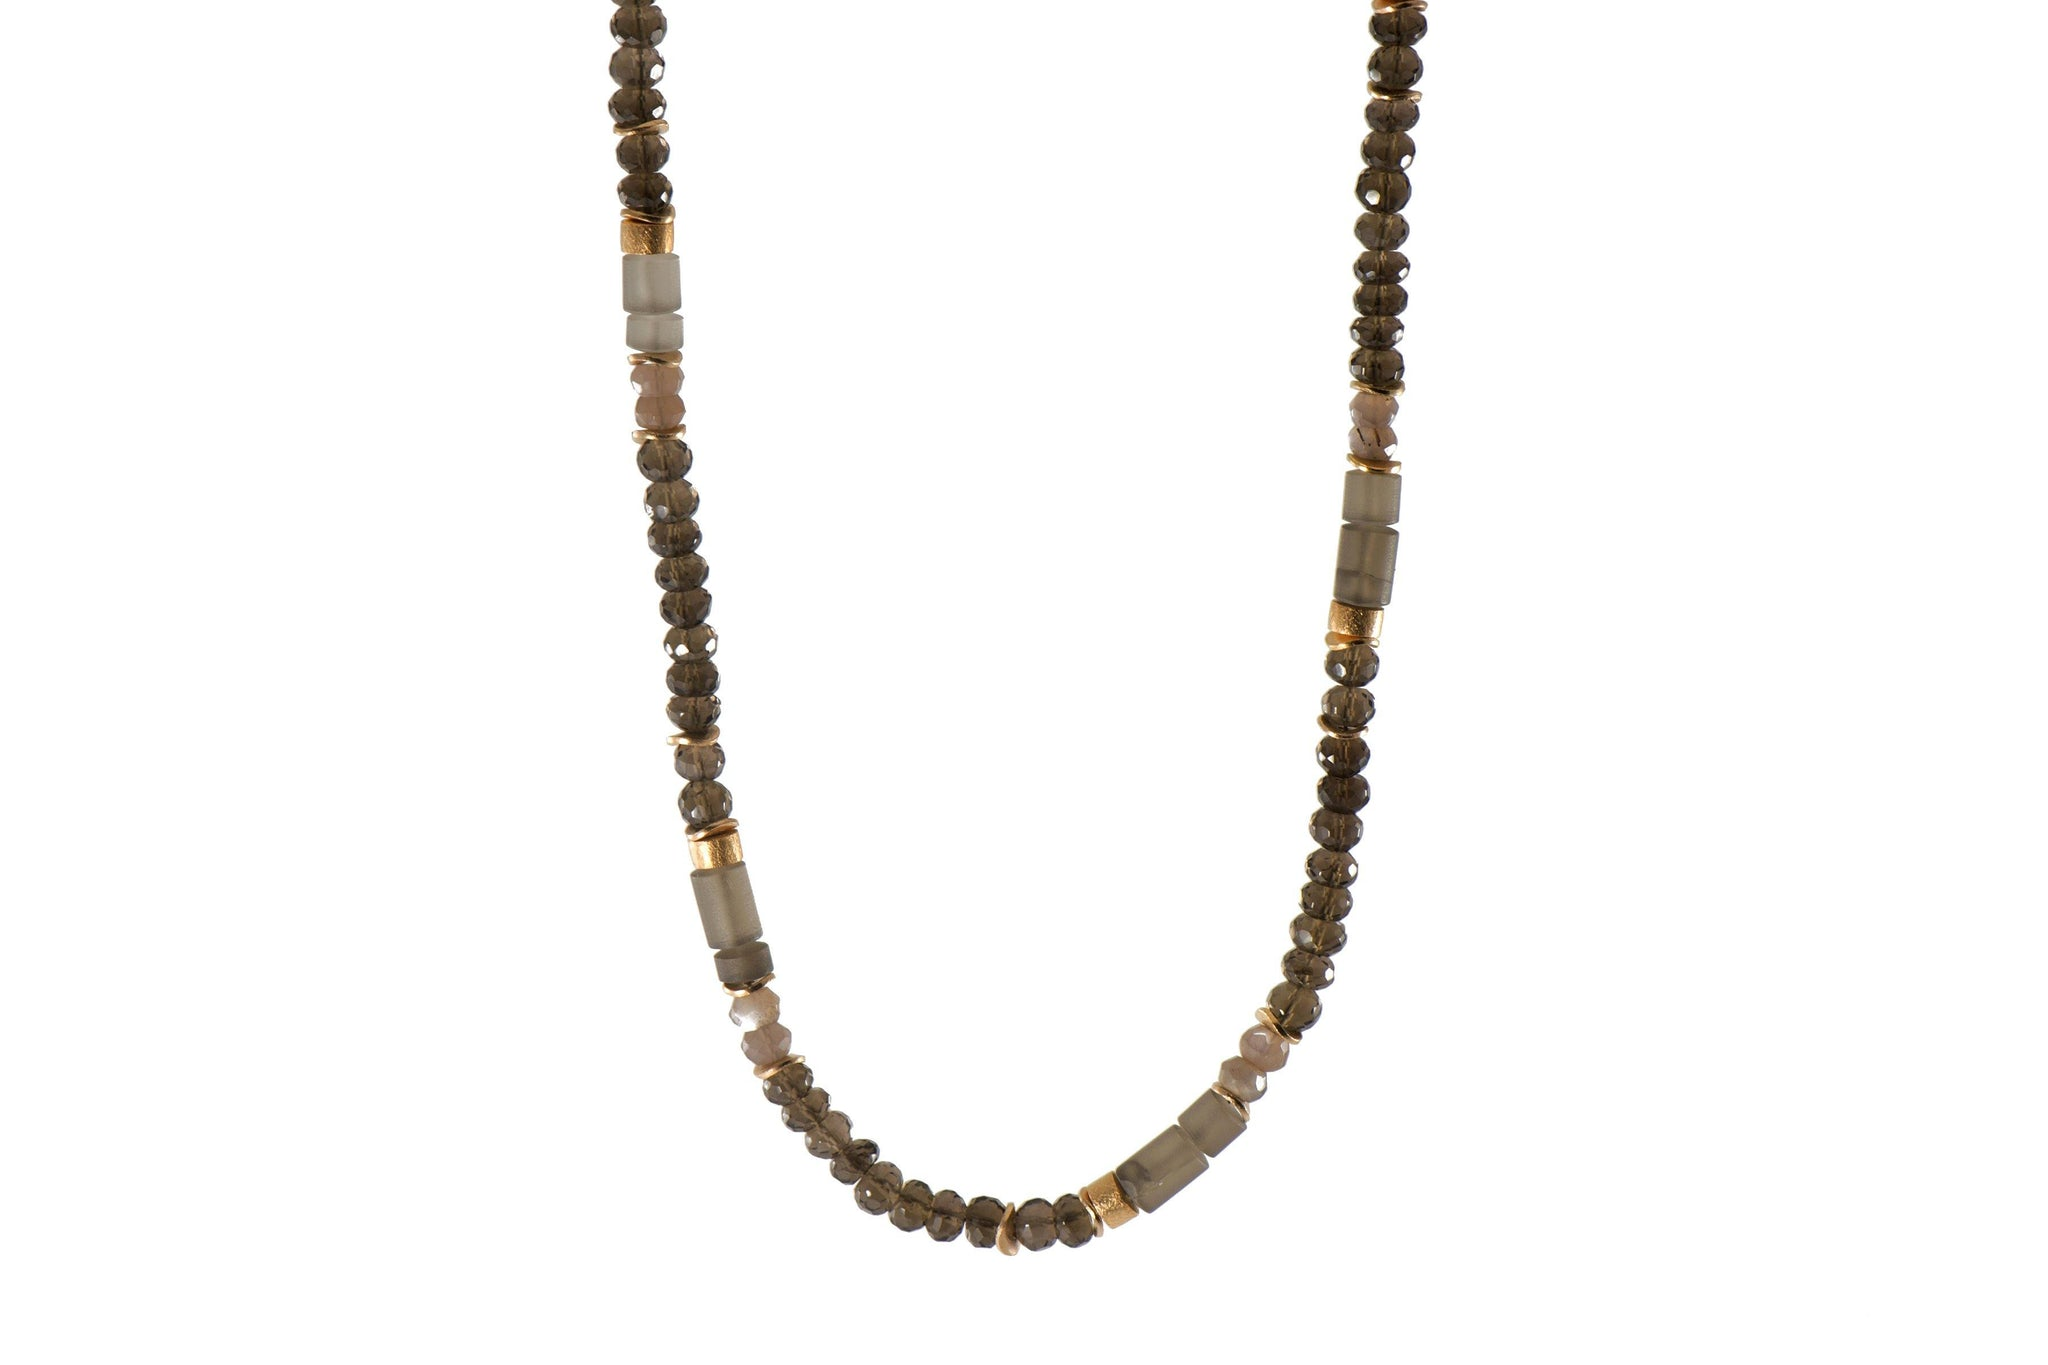 SMOKY QUARTZ NECKLACE 5MM FAIR TRADE 24K GOLD VERMEIL - Joyla Jewelry